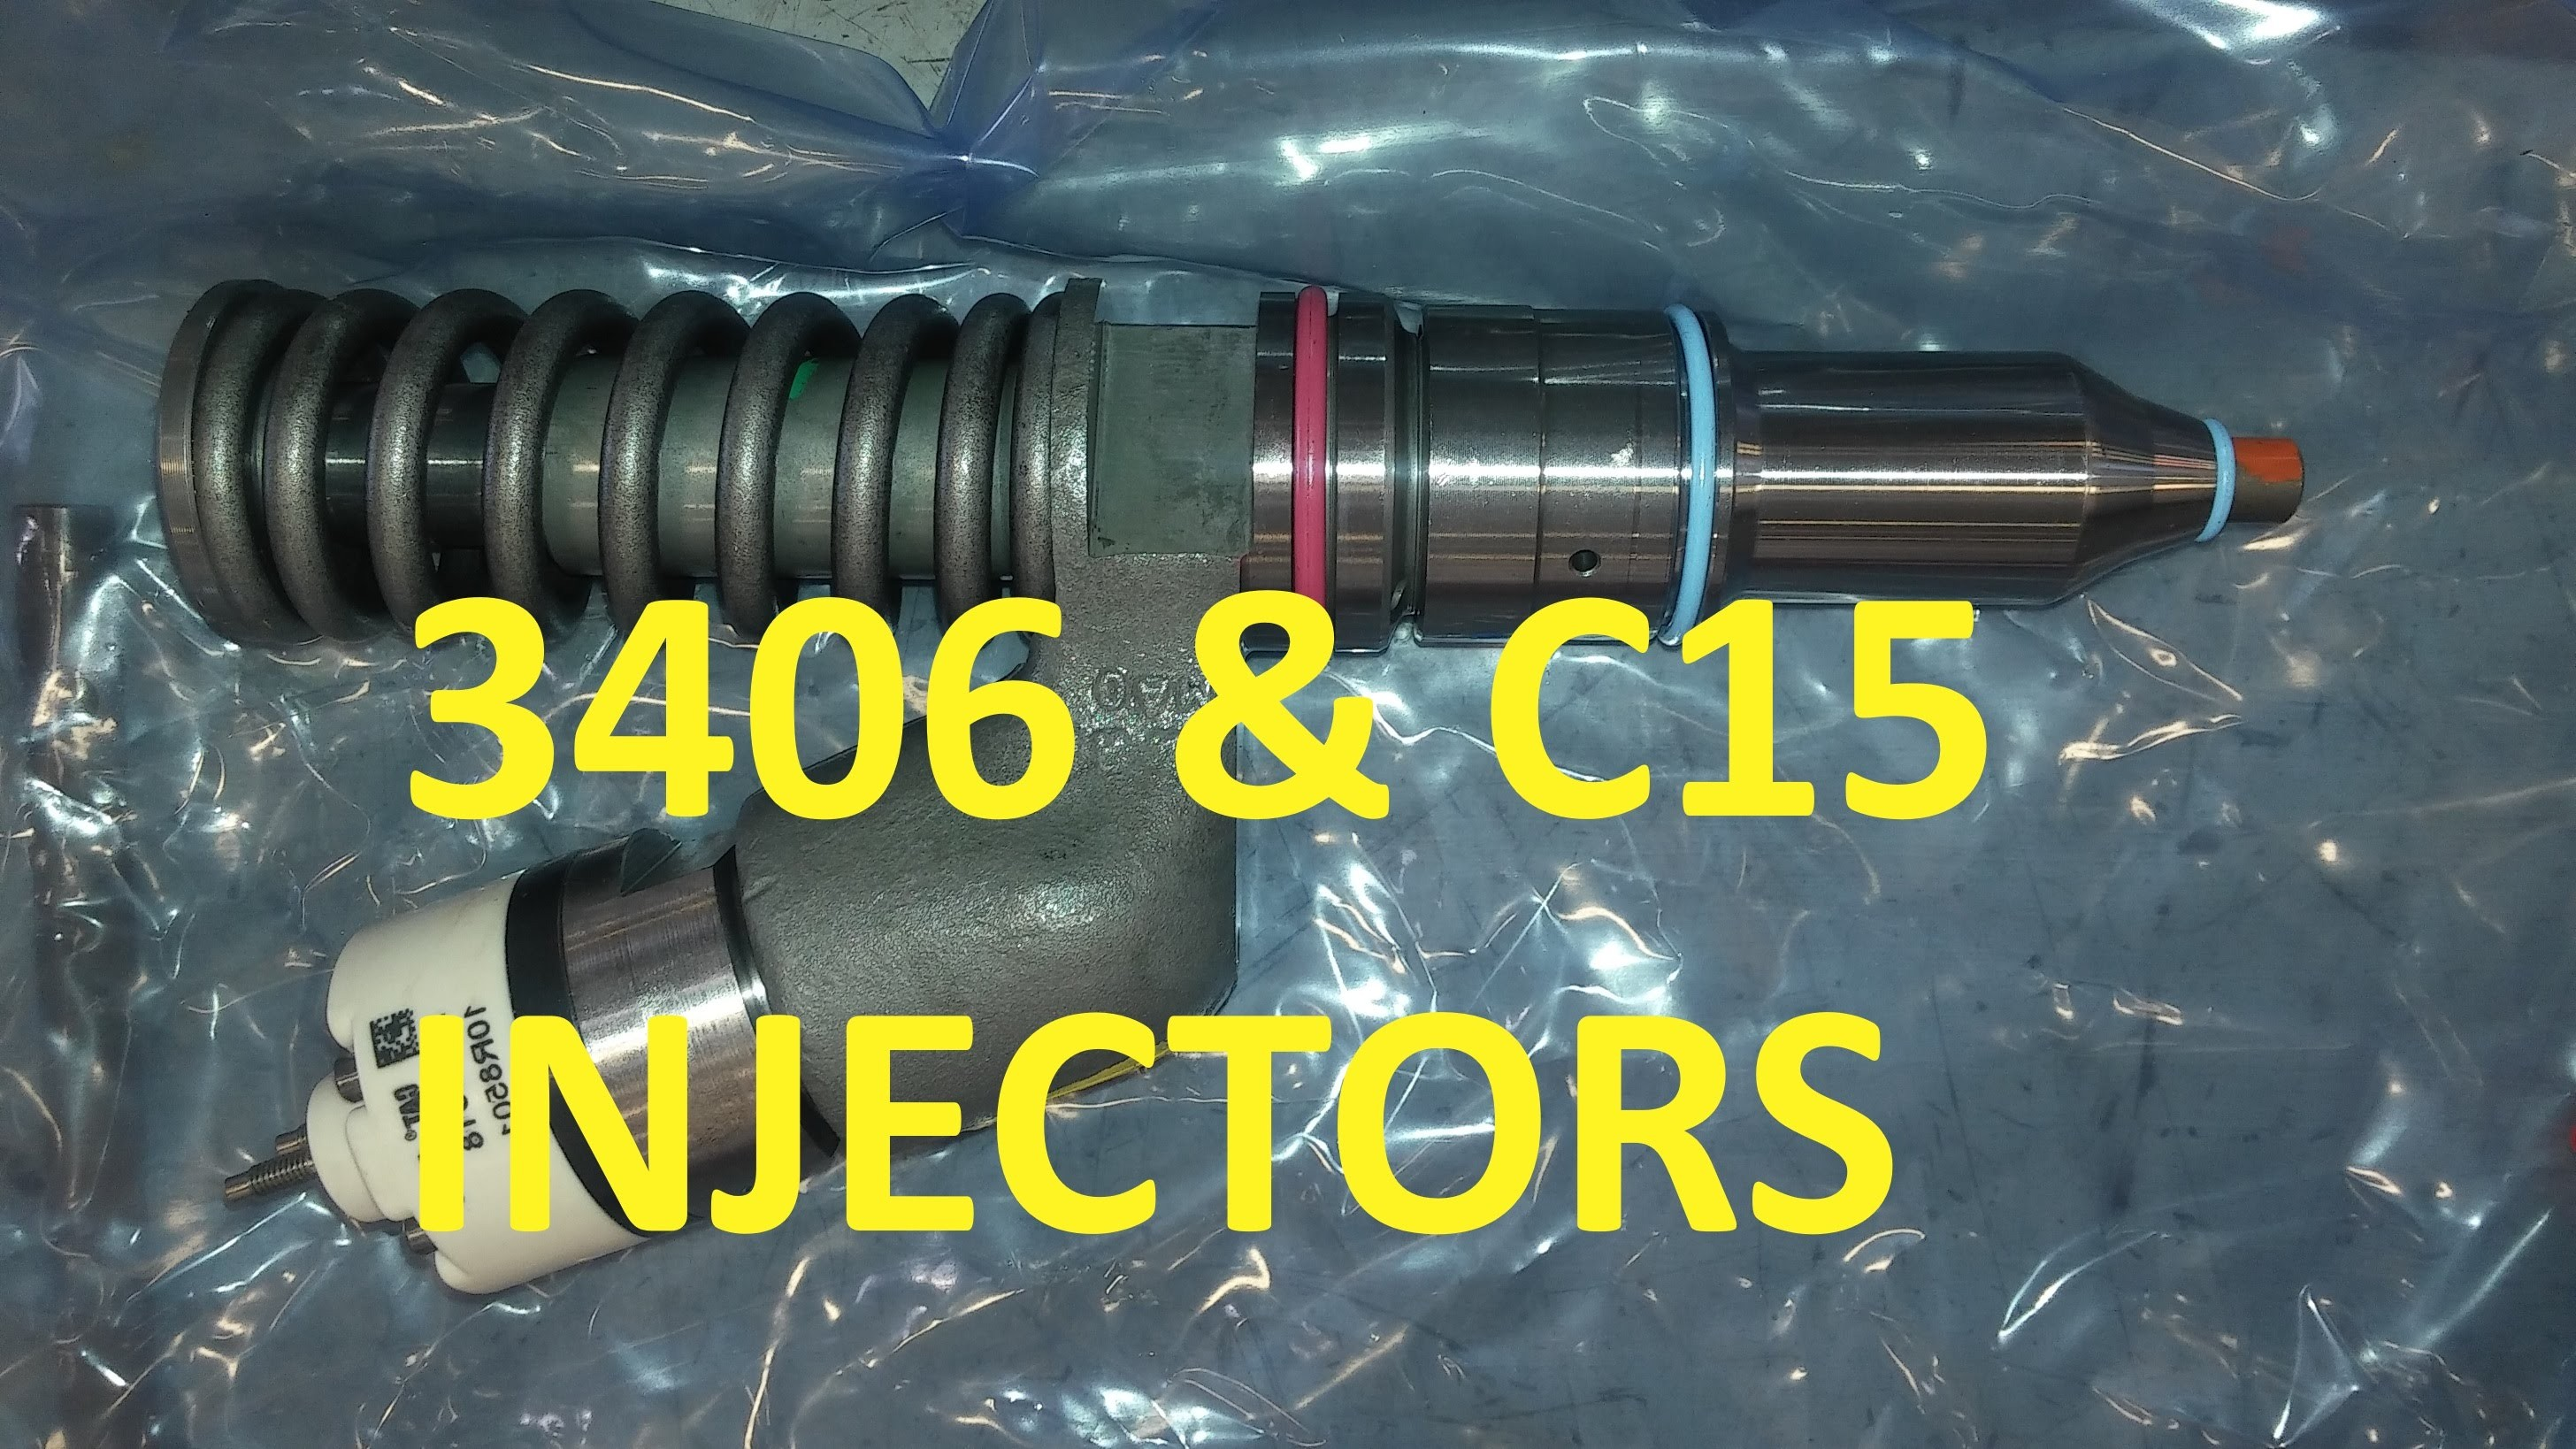 C13 Caterpillar Engine Diagram How to Change A 3406 Injector or C15  Injector On Cat Engines